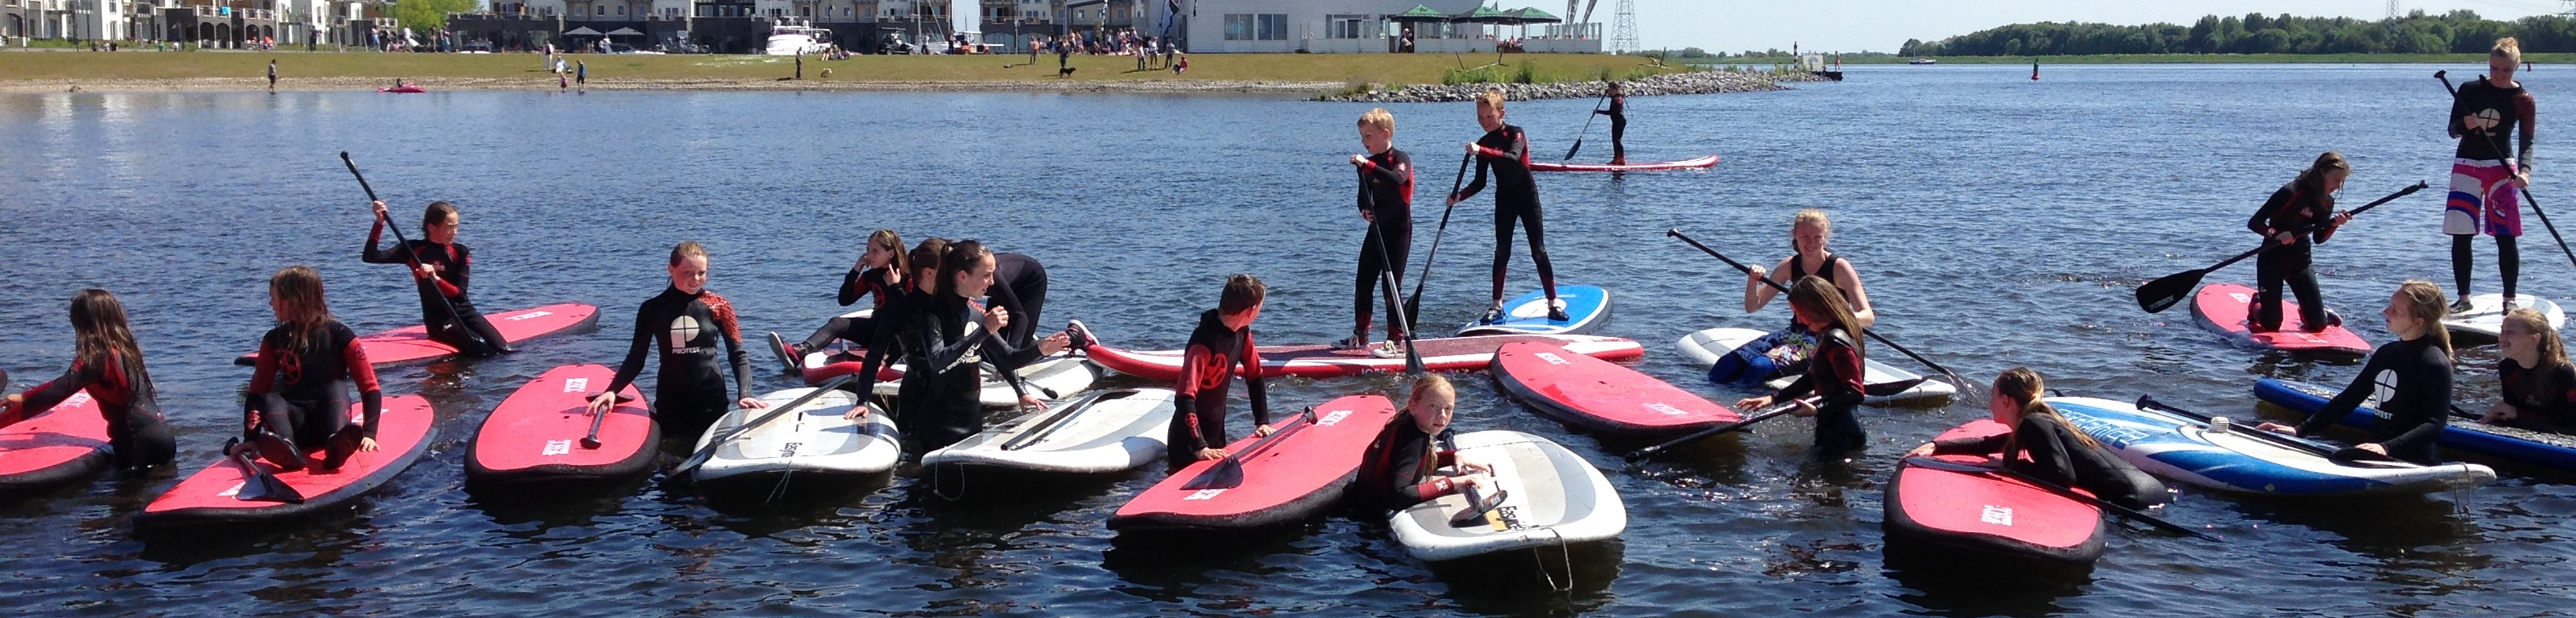 Suppen / windsurfen kinderfeestje | Eemhof Watersport & Beachclub